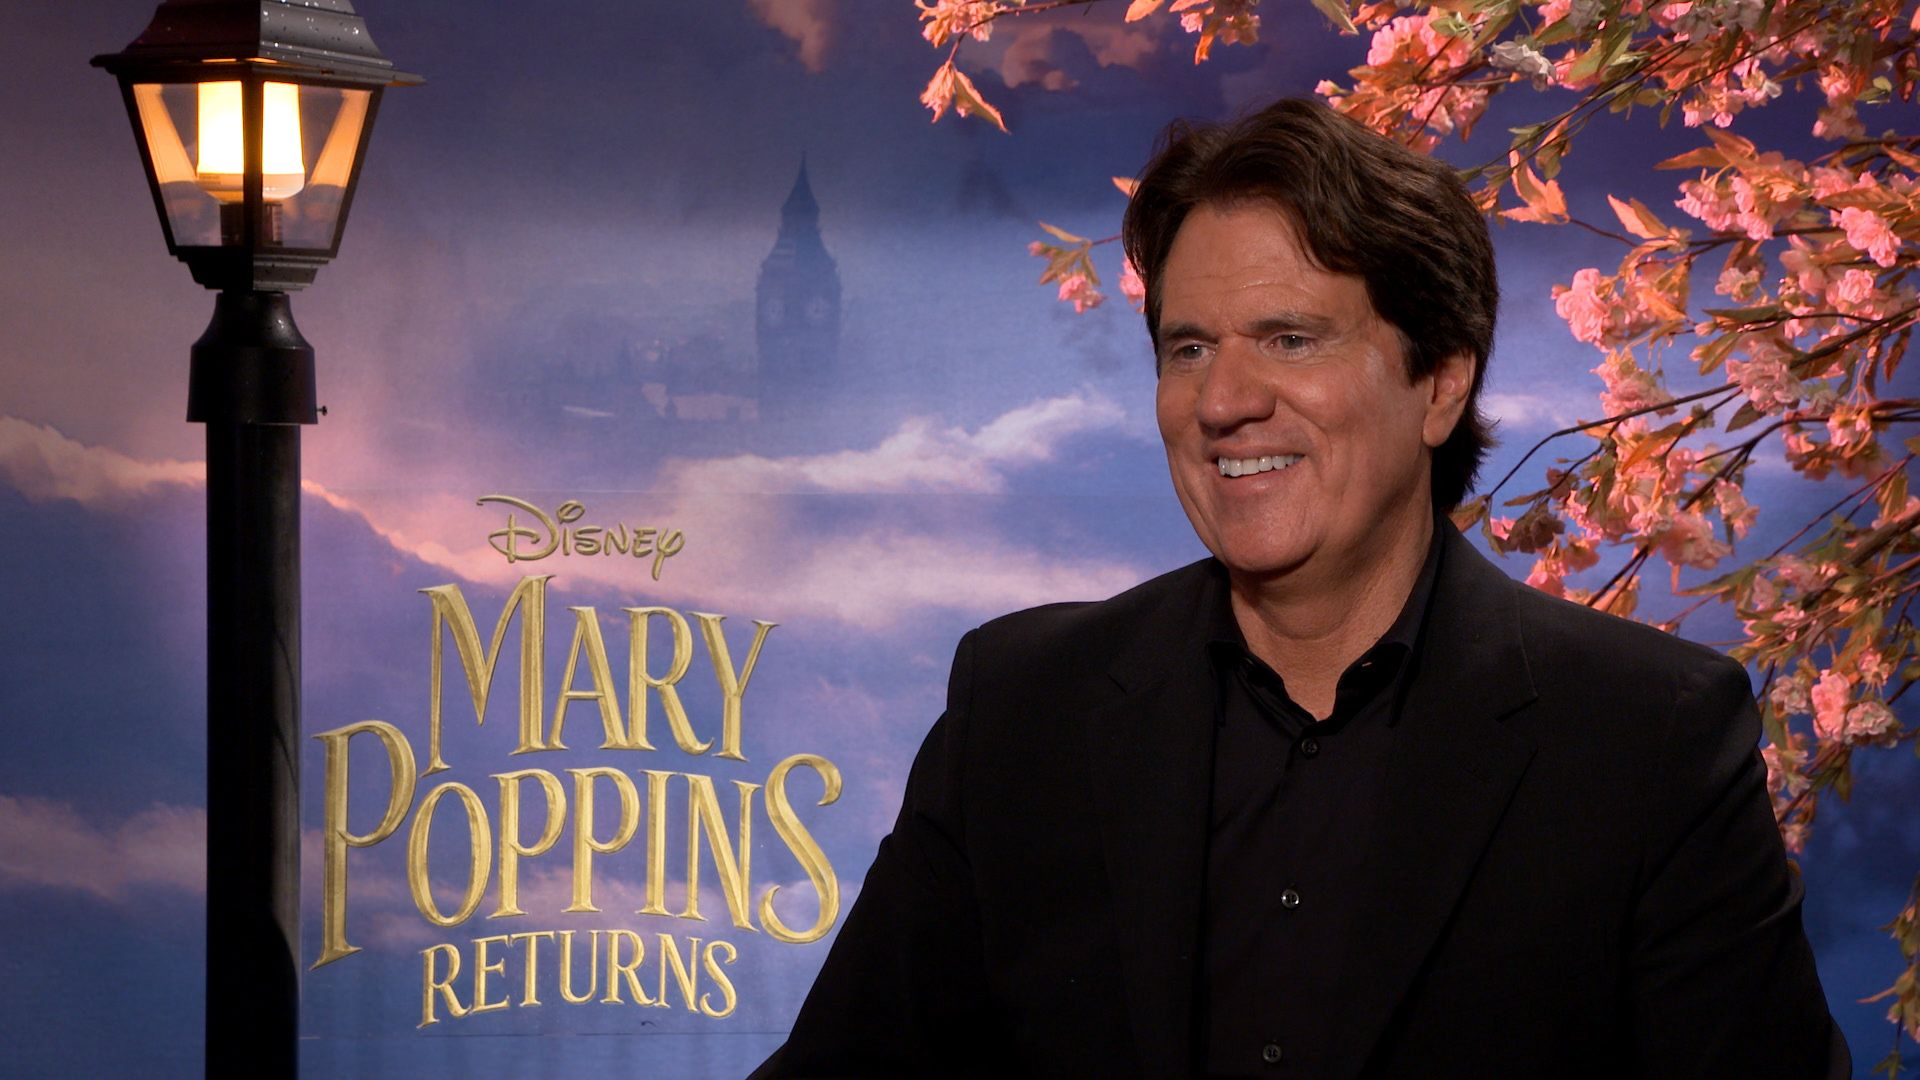 Rob Marshall On Mary Poppins Returns And The Live Action